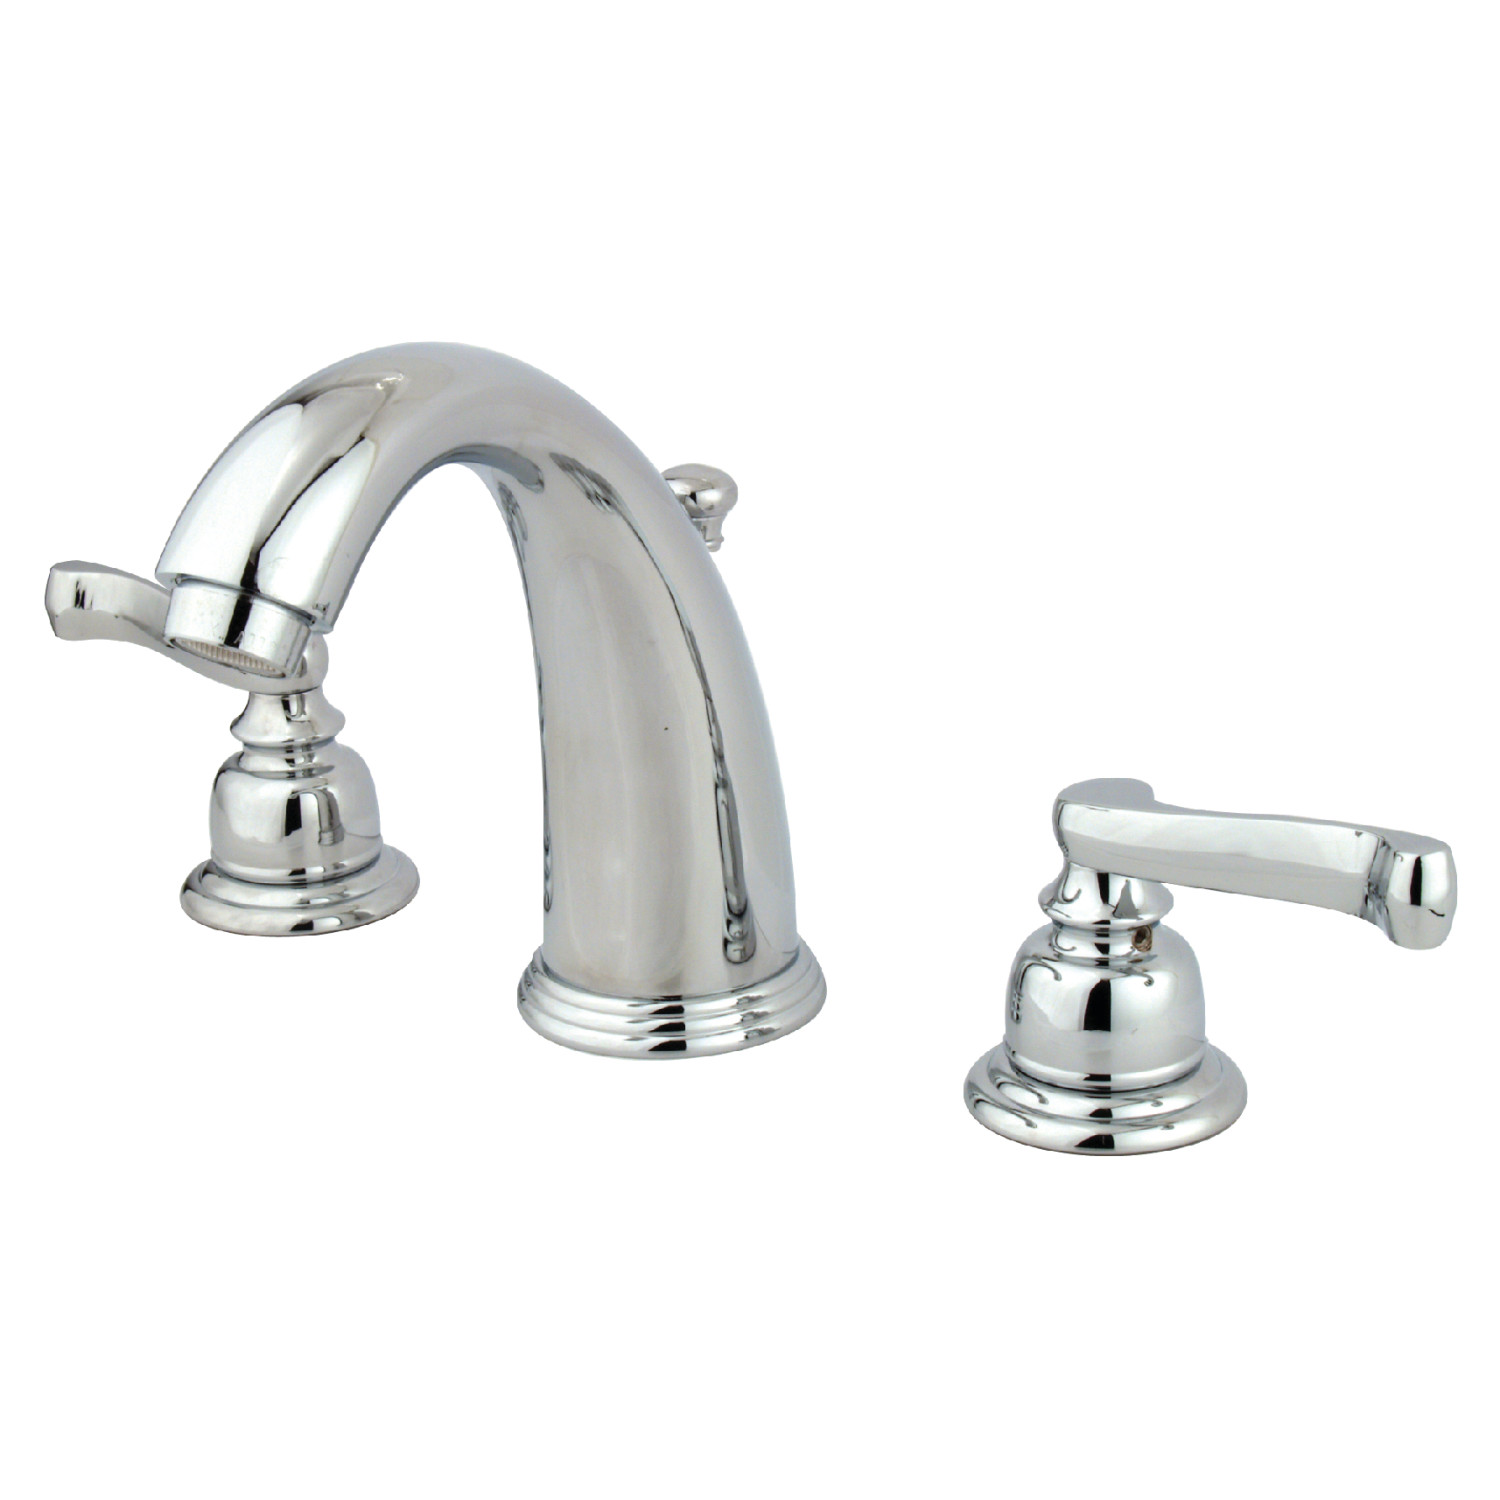 Traditional Two-Handle 3-Hole Deck Mounted Widespread Bathroom Faucet with Plastic Pop-Up Polished Chrome with 4 Color Options